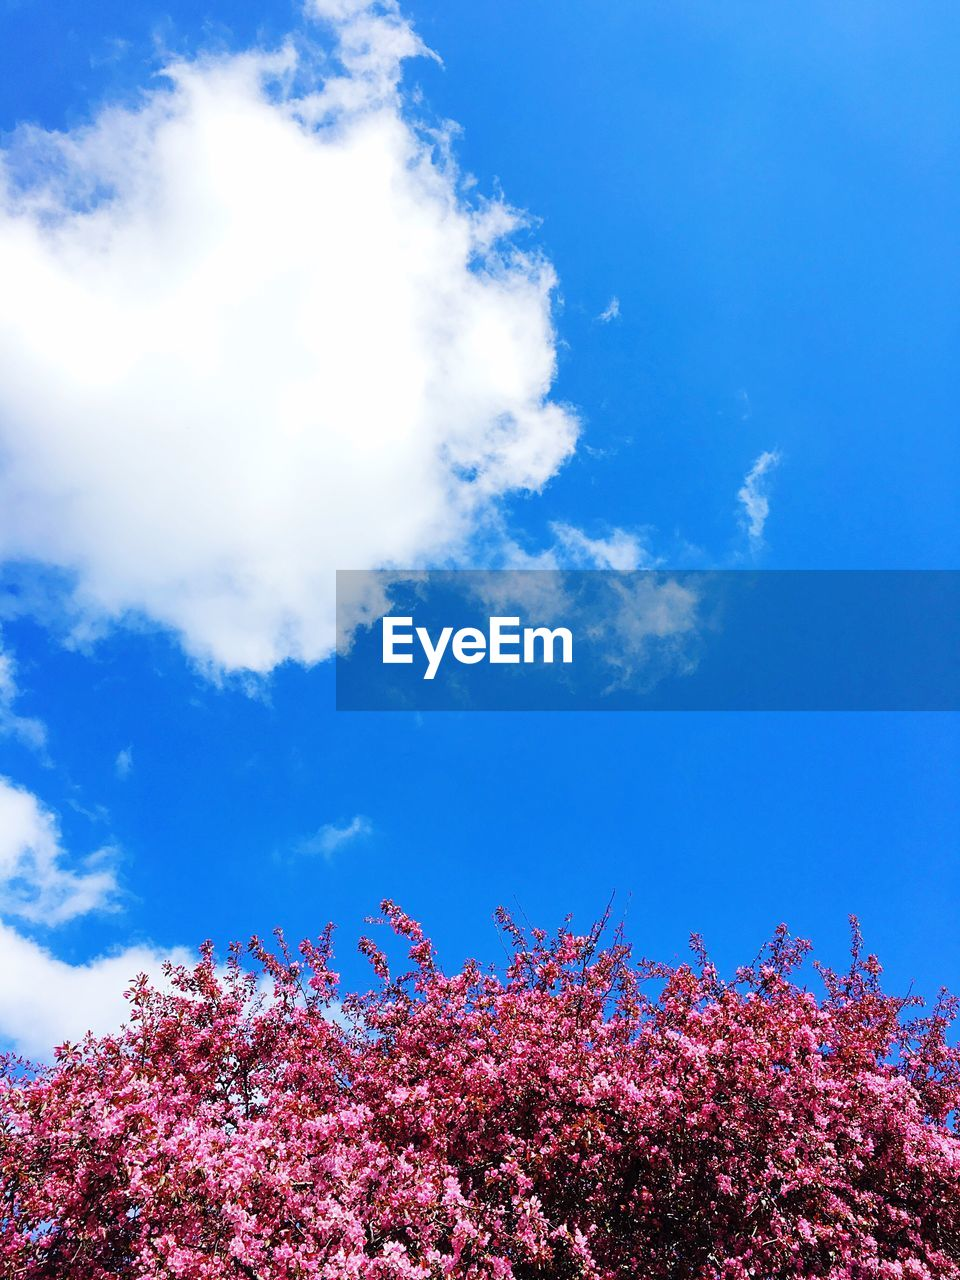 flower, growth, blossom, tree, beauty in nature, low angle view, nature, cloud - sky, sky, fragility, springtime, day, tranquility, freshness, blue, pink color, outdoors, no people